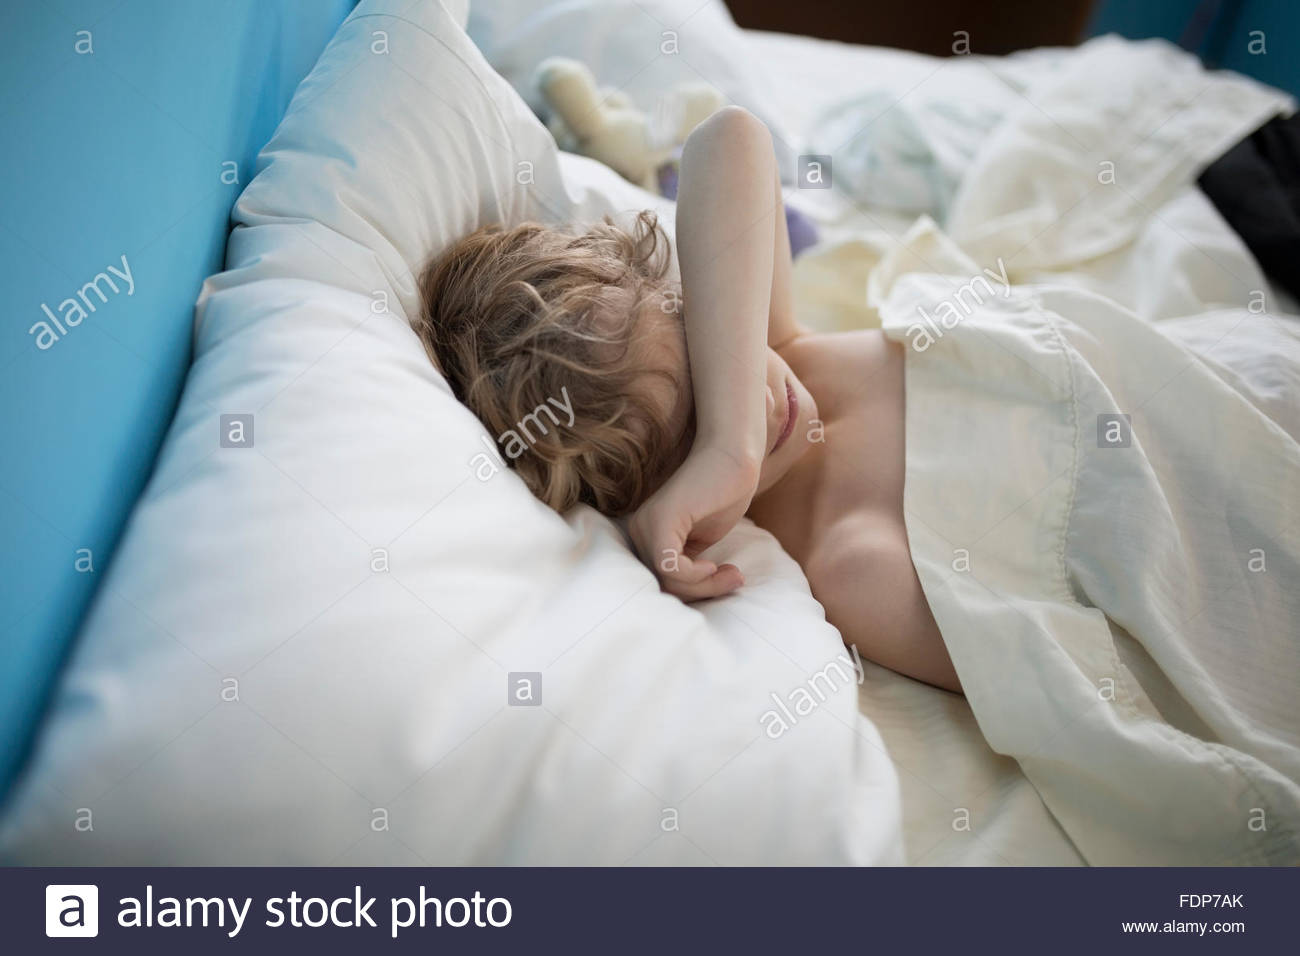 Tired boy sleeping with arm over eyes - Stock Image